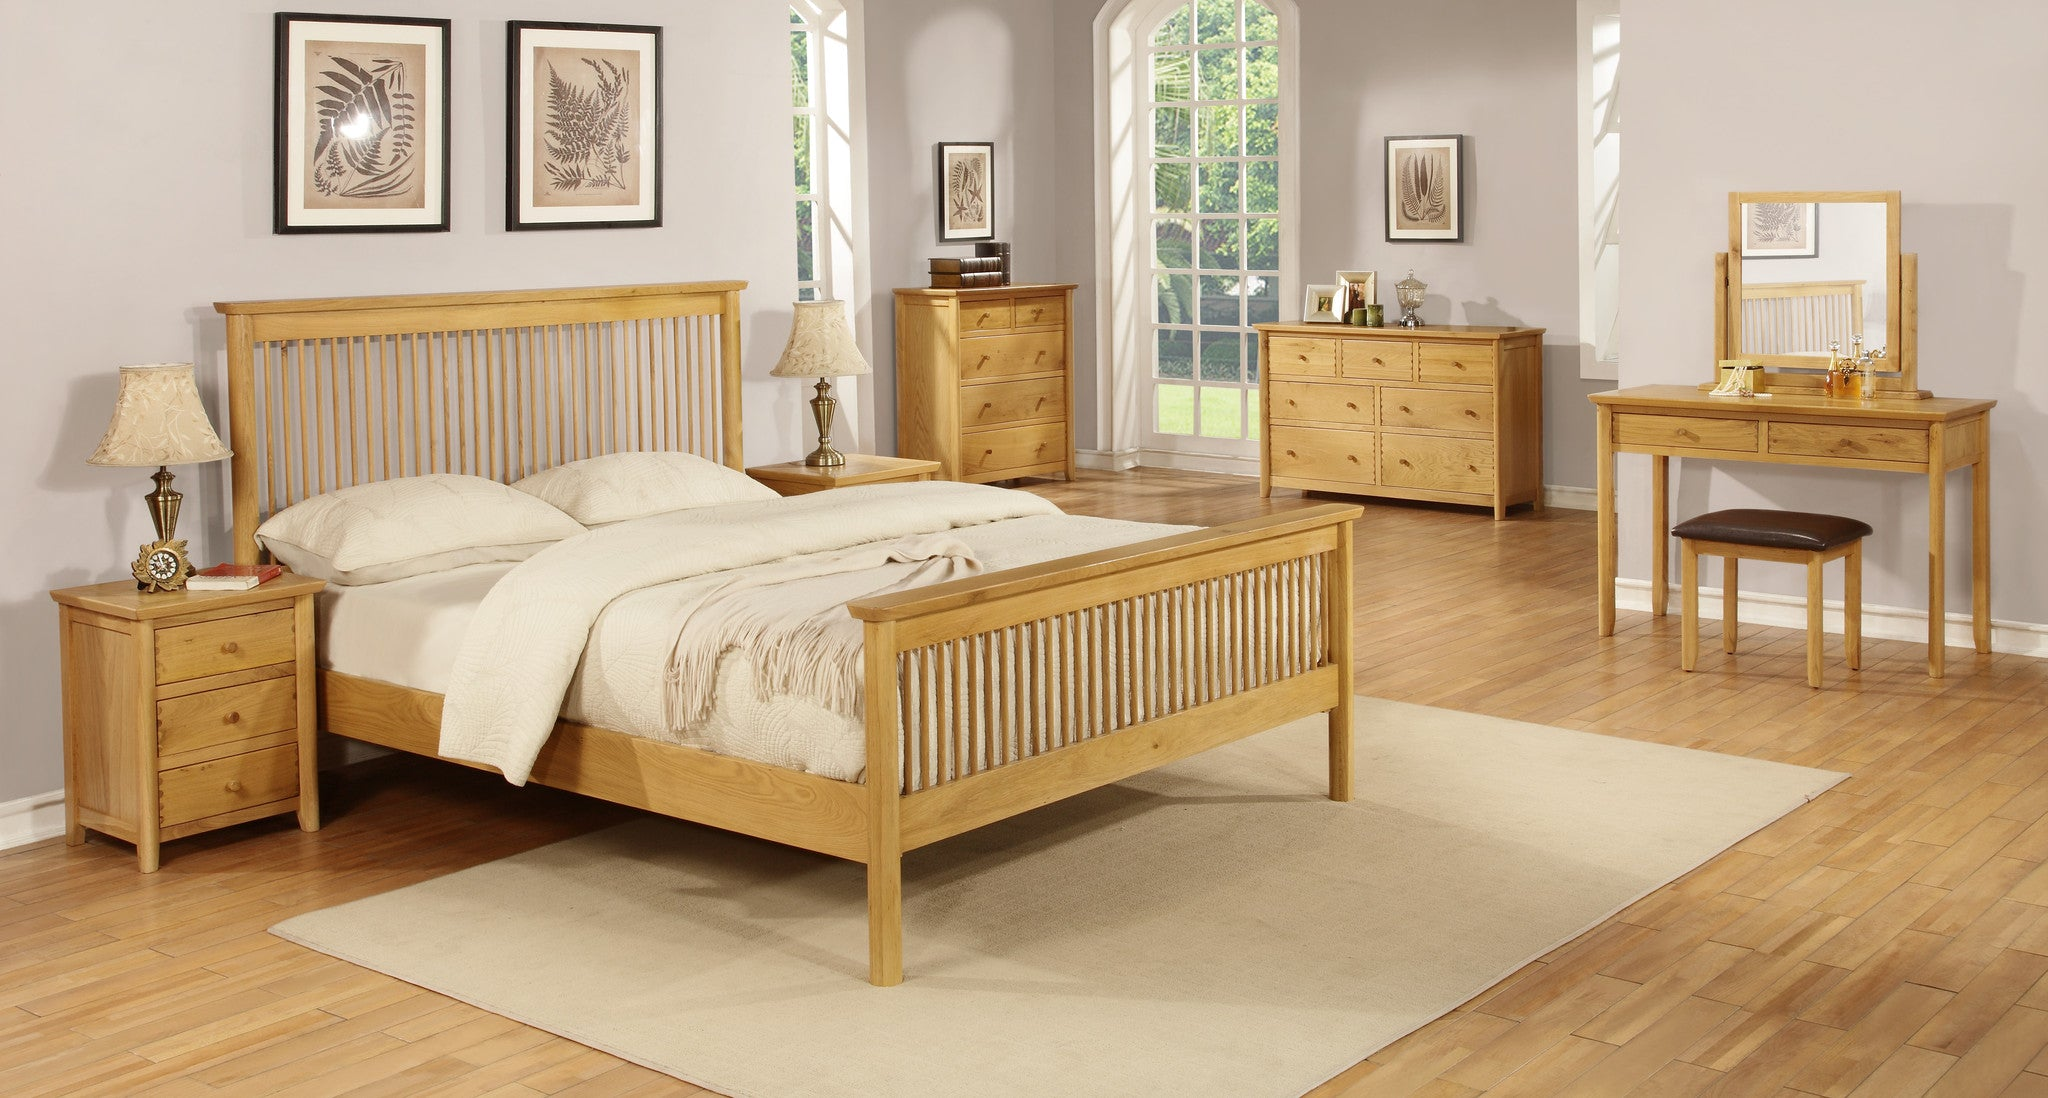 Hamilton Bedroom Furniture Hamilton Solid Oak Bedroom Furniture The Cheshire Bedroom Company